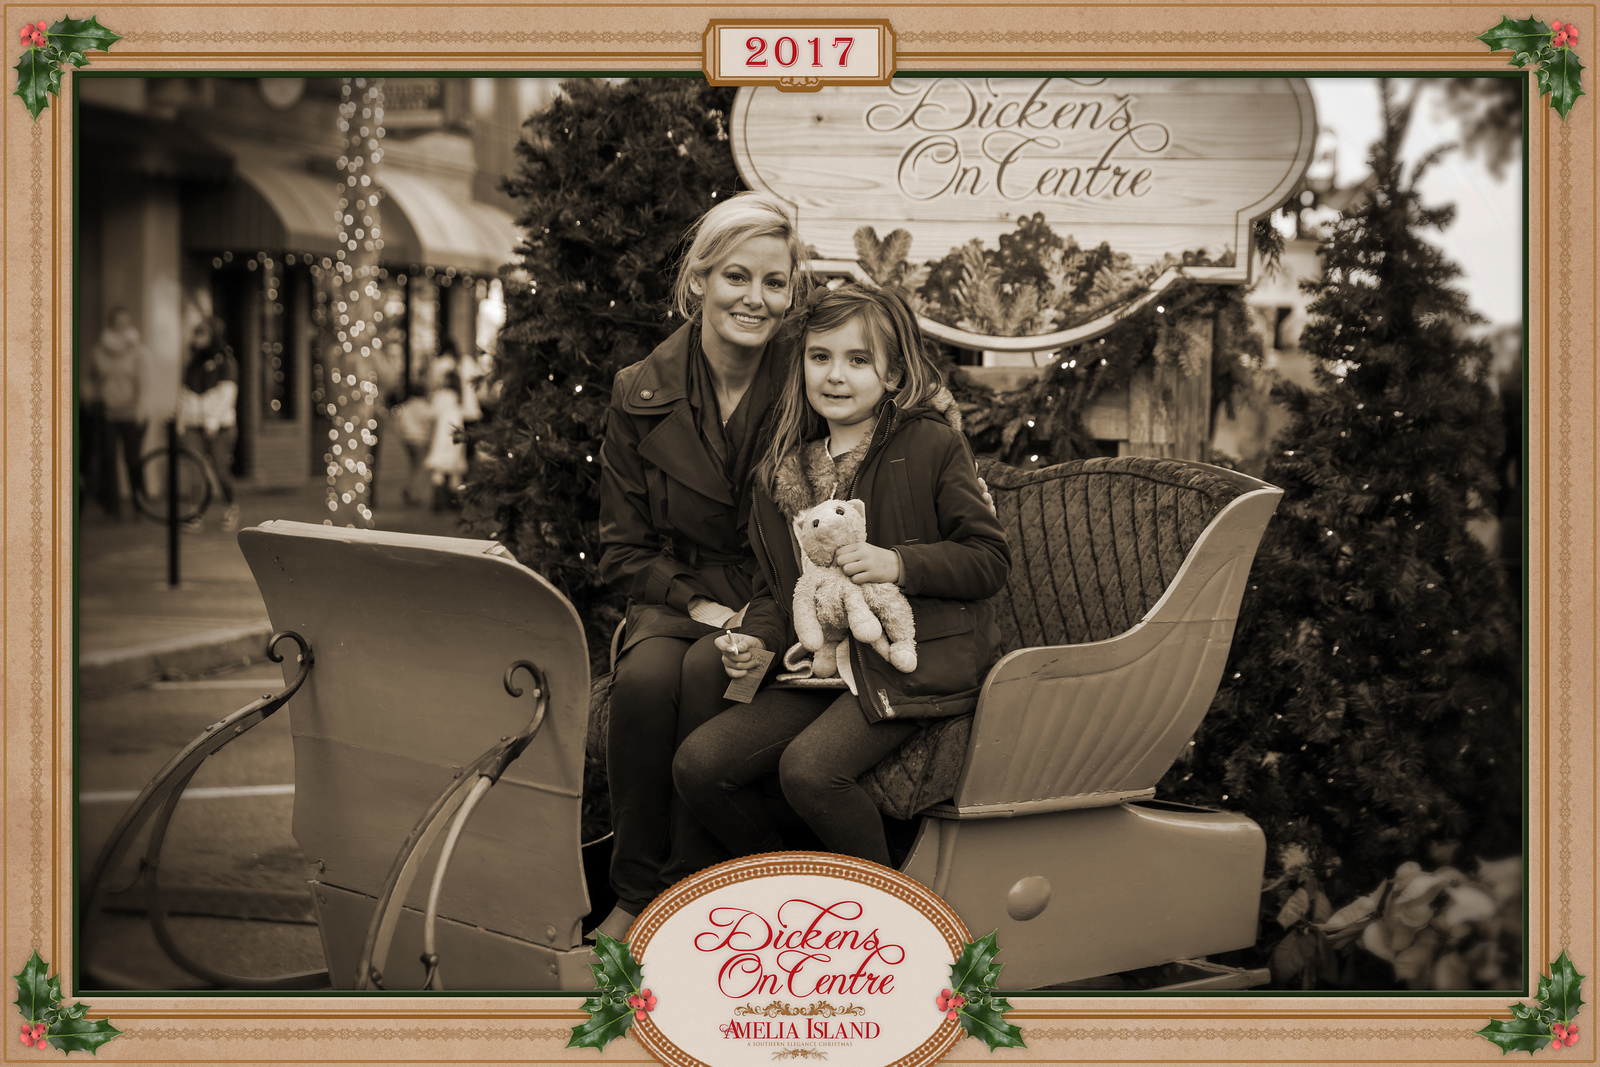 2017 Dickens on Centre - Old Time Photos 174A - Deremer Studios LLC